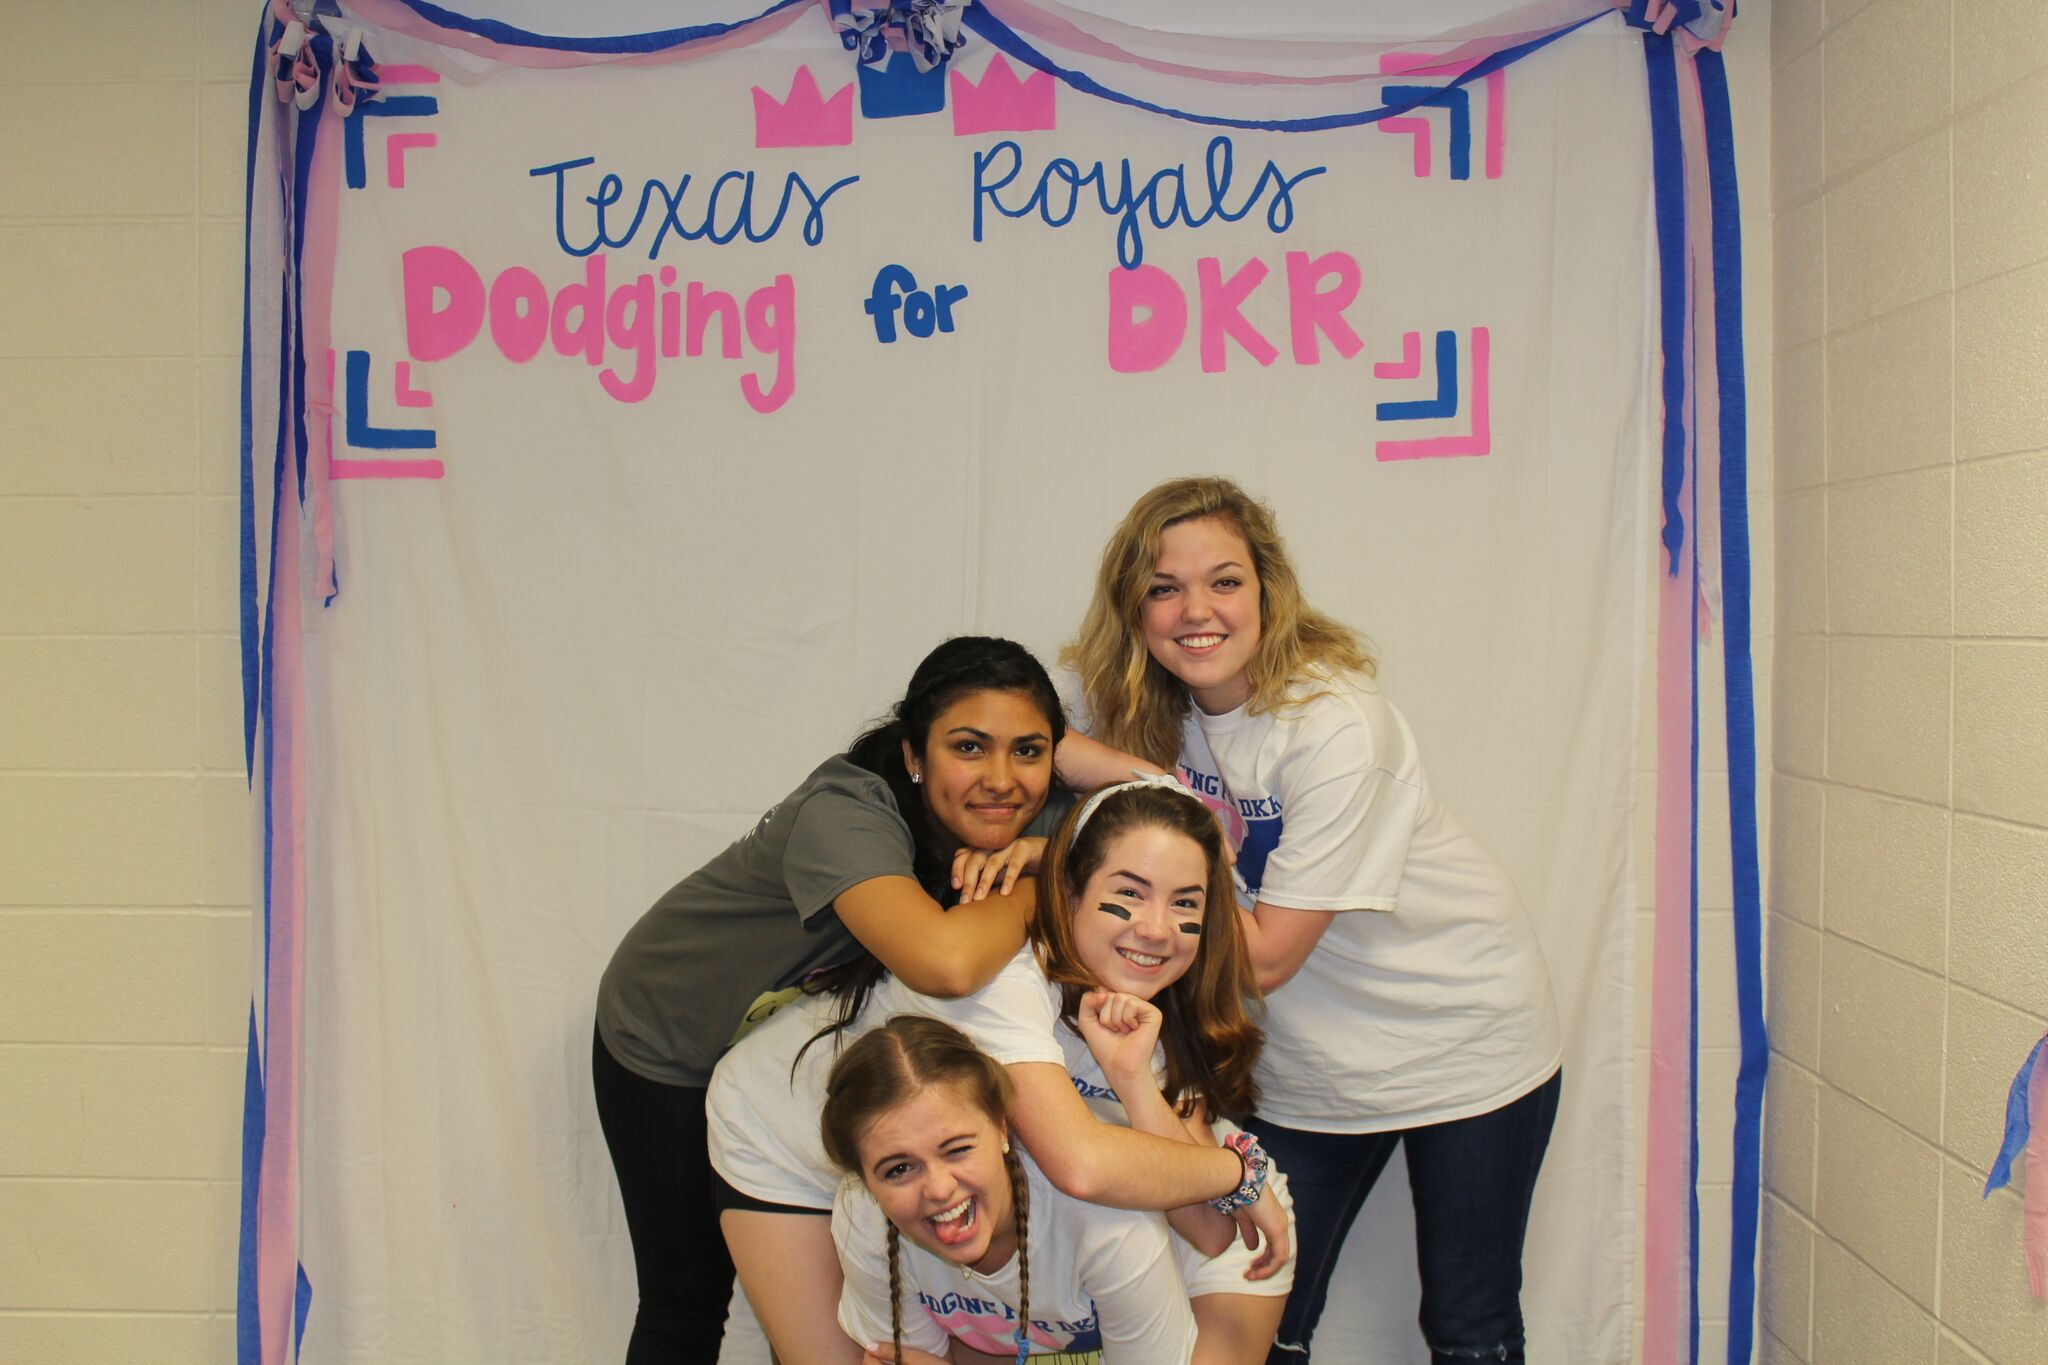 Caitlin, Cynthia, Mackenzie, and Gwen at our annual Dodging for DKR fundraiser.